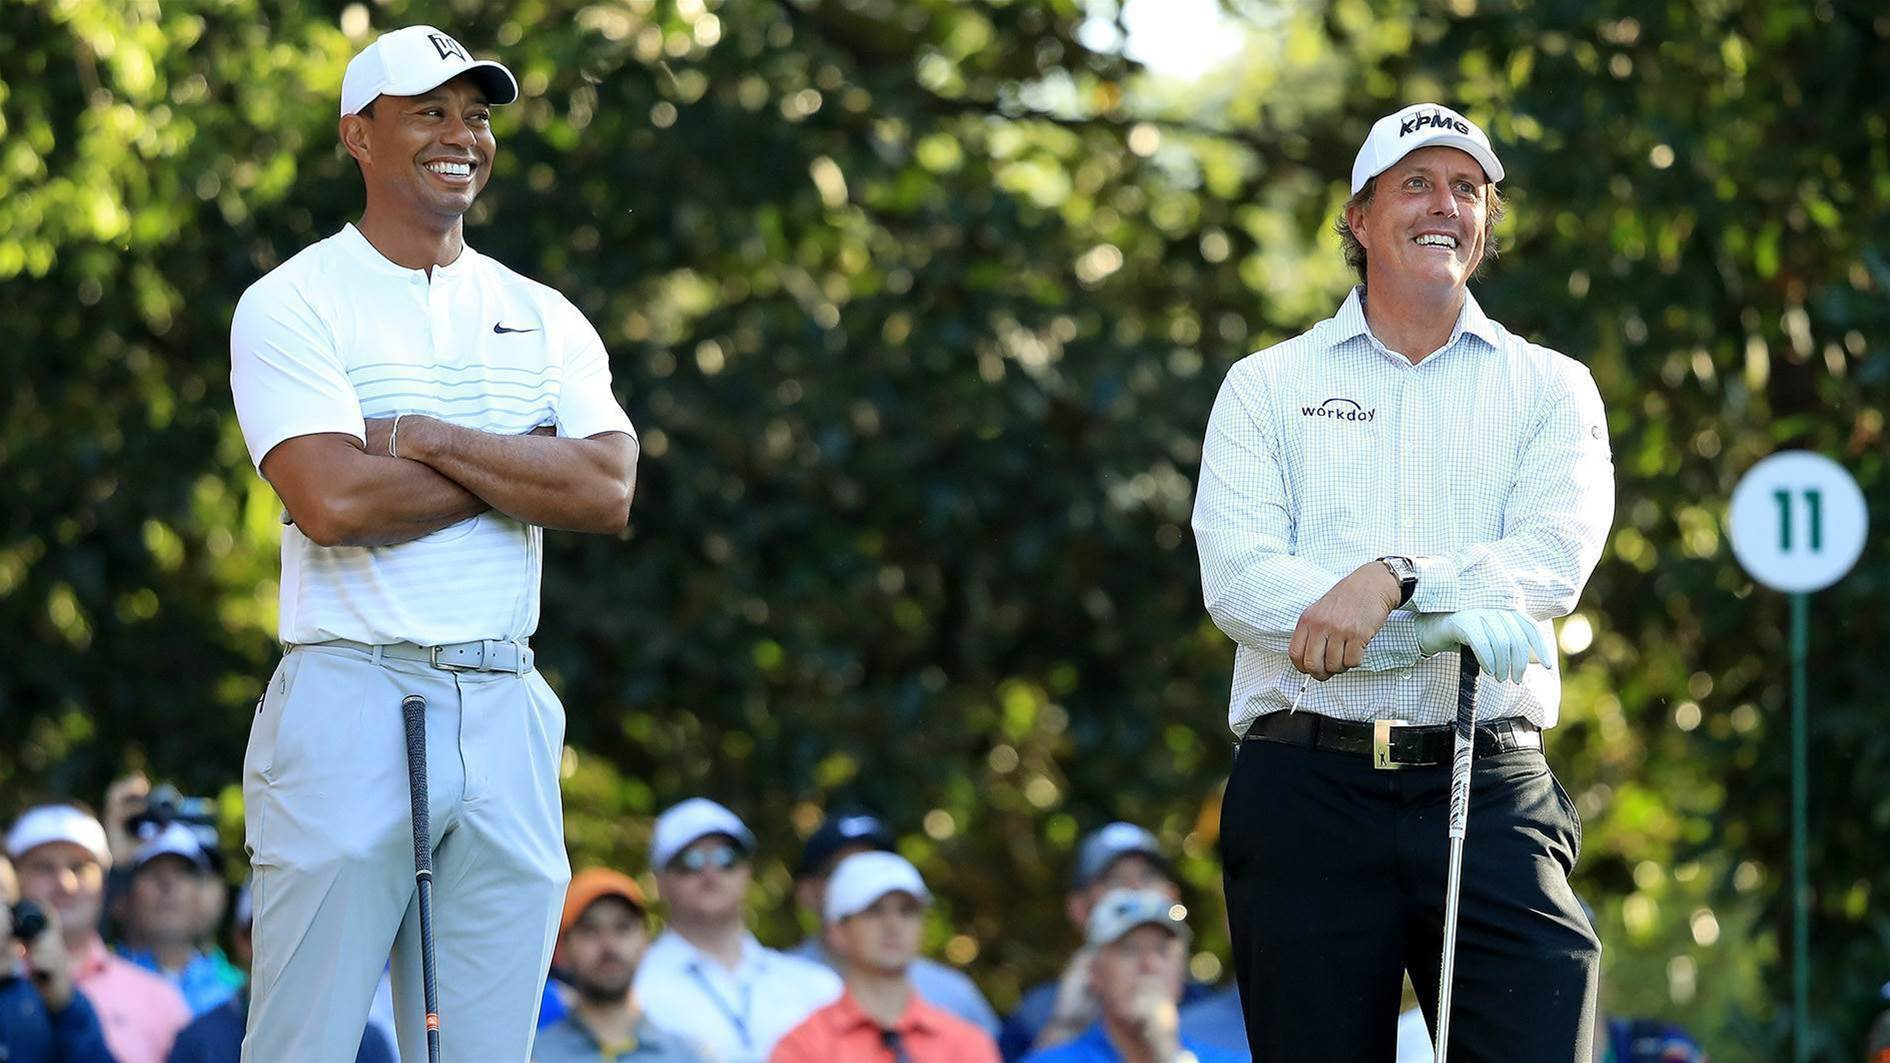 Tiger v Phil – The next chapter in modern golf's greatest rivalry